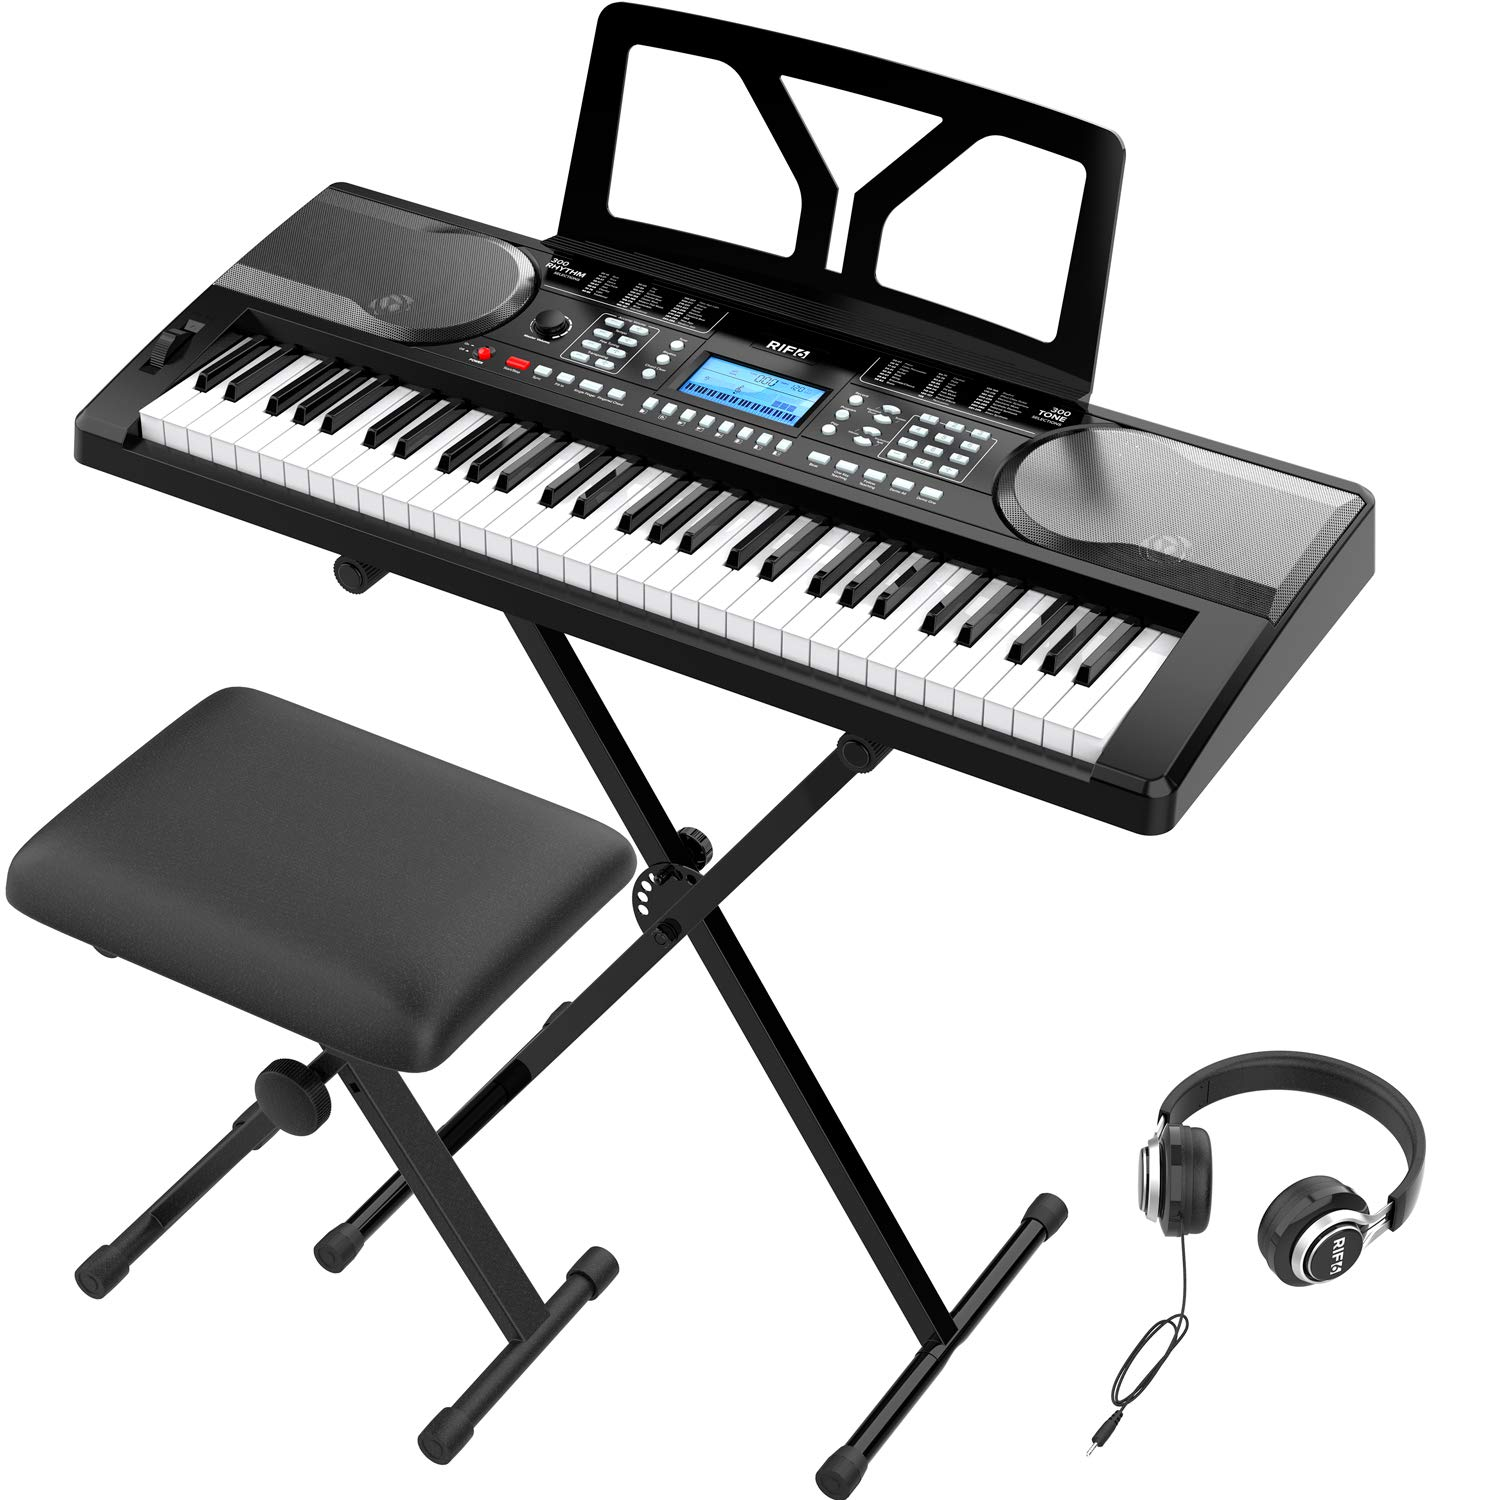 RIF6 Electric 61 Key Piano Keyboard - with Over Ear Headphones, Music Stand, Digital LCD Display, Teaching Modes and Adjustable Stool - Electronic Musical Instruments Starter Set for Kids and Adults by RIF6 (Image #1)